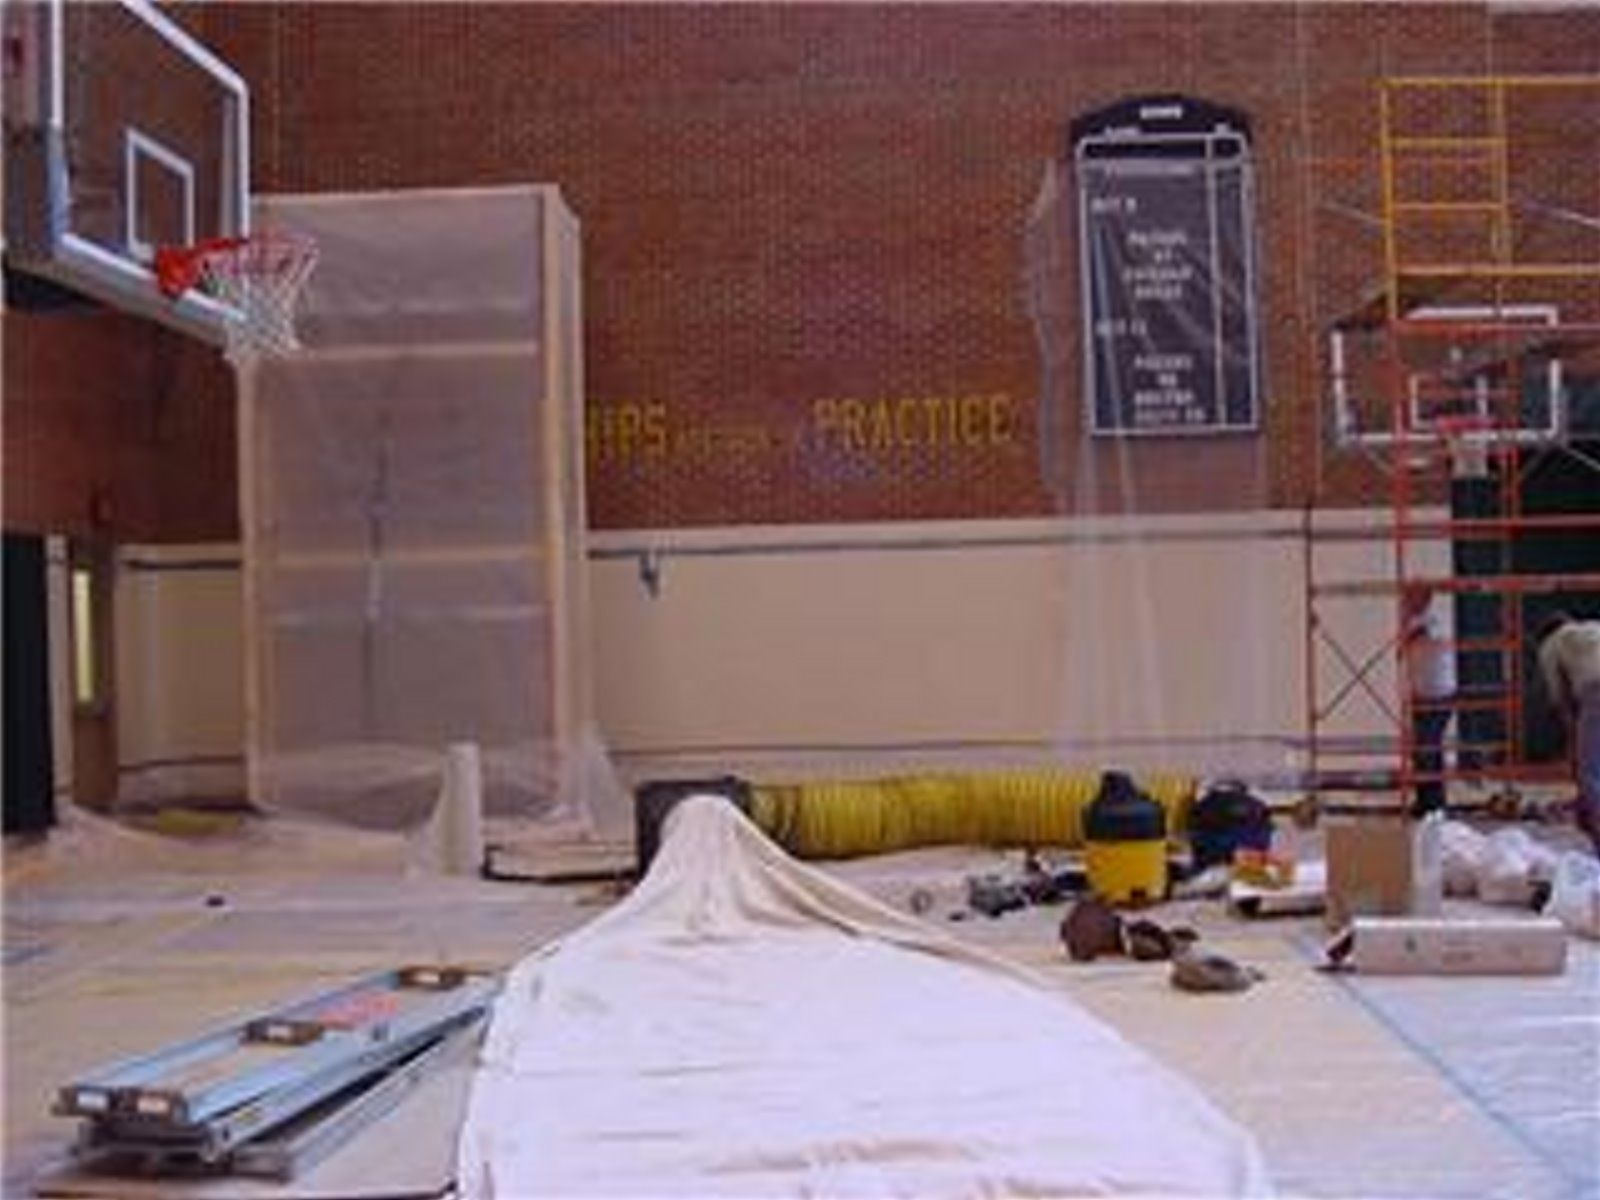 Indiana Pacers Practice Court Walls - Paint Removal - inside, abrasive soft blast, containment